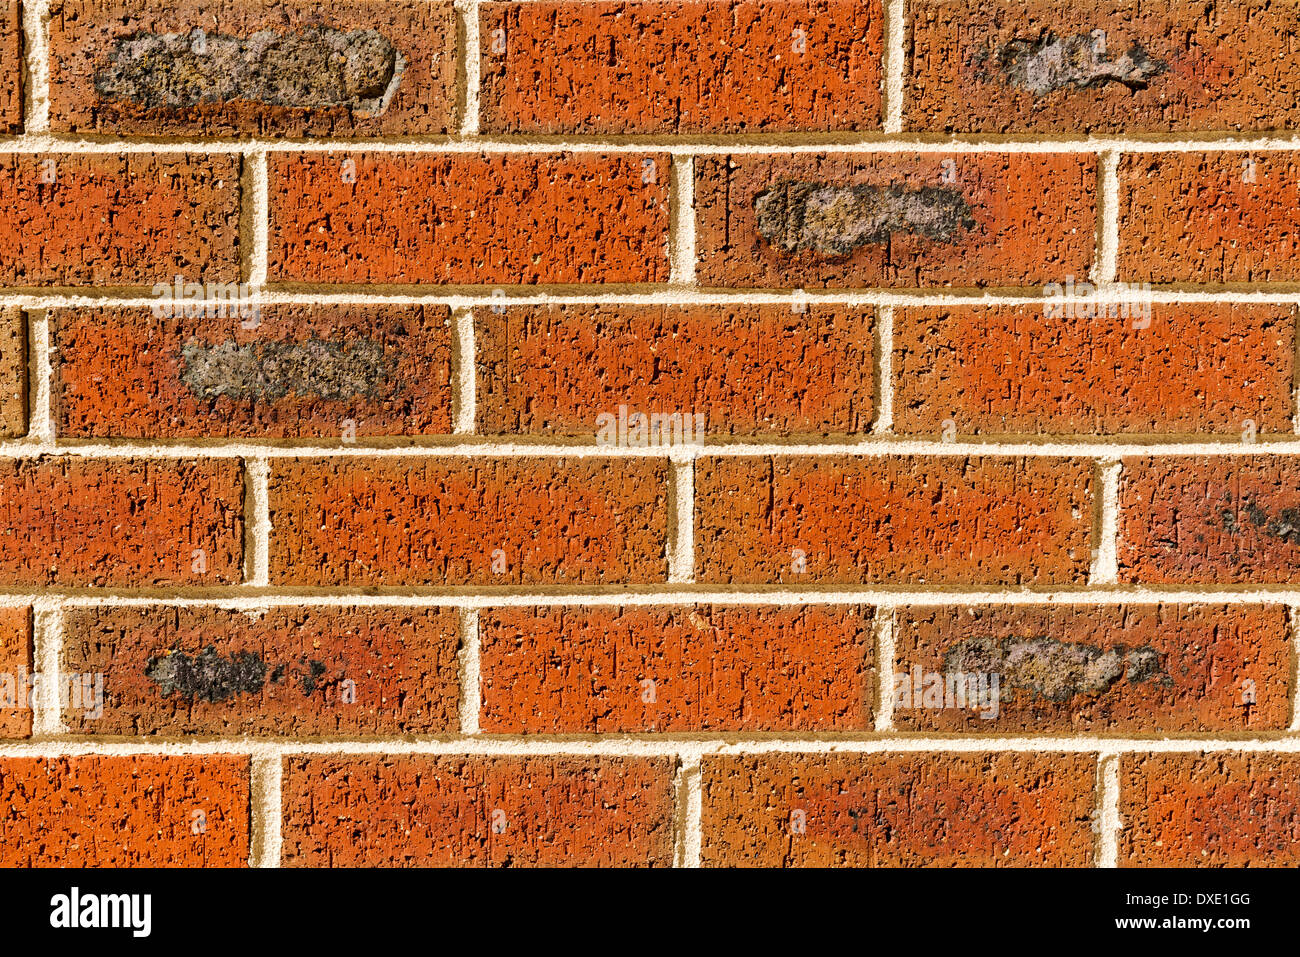 Brick And Mortar Stock Photos & Brick And Mortar Stock Images - Alamy